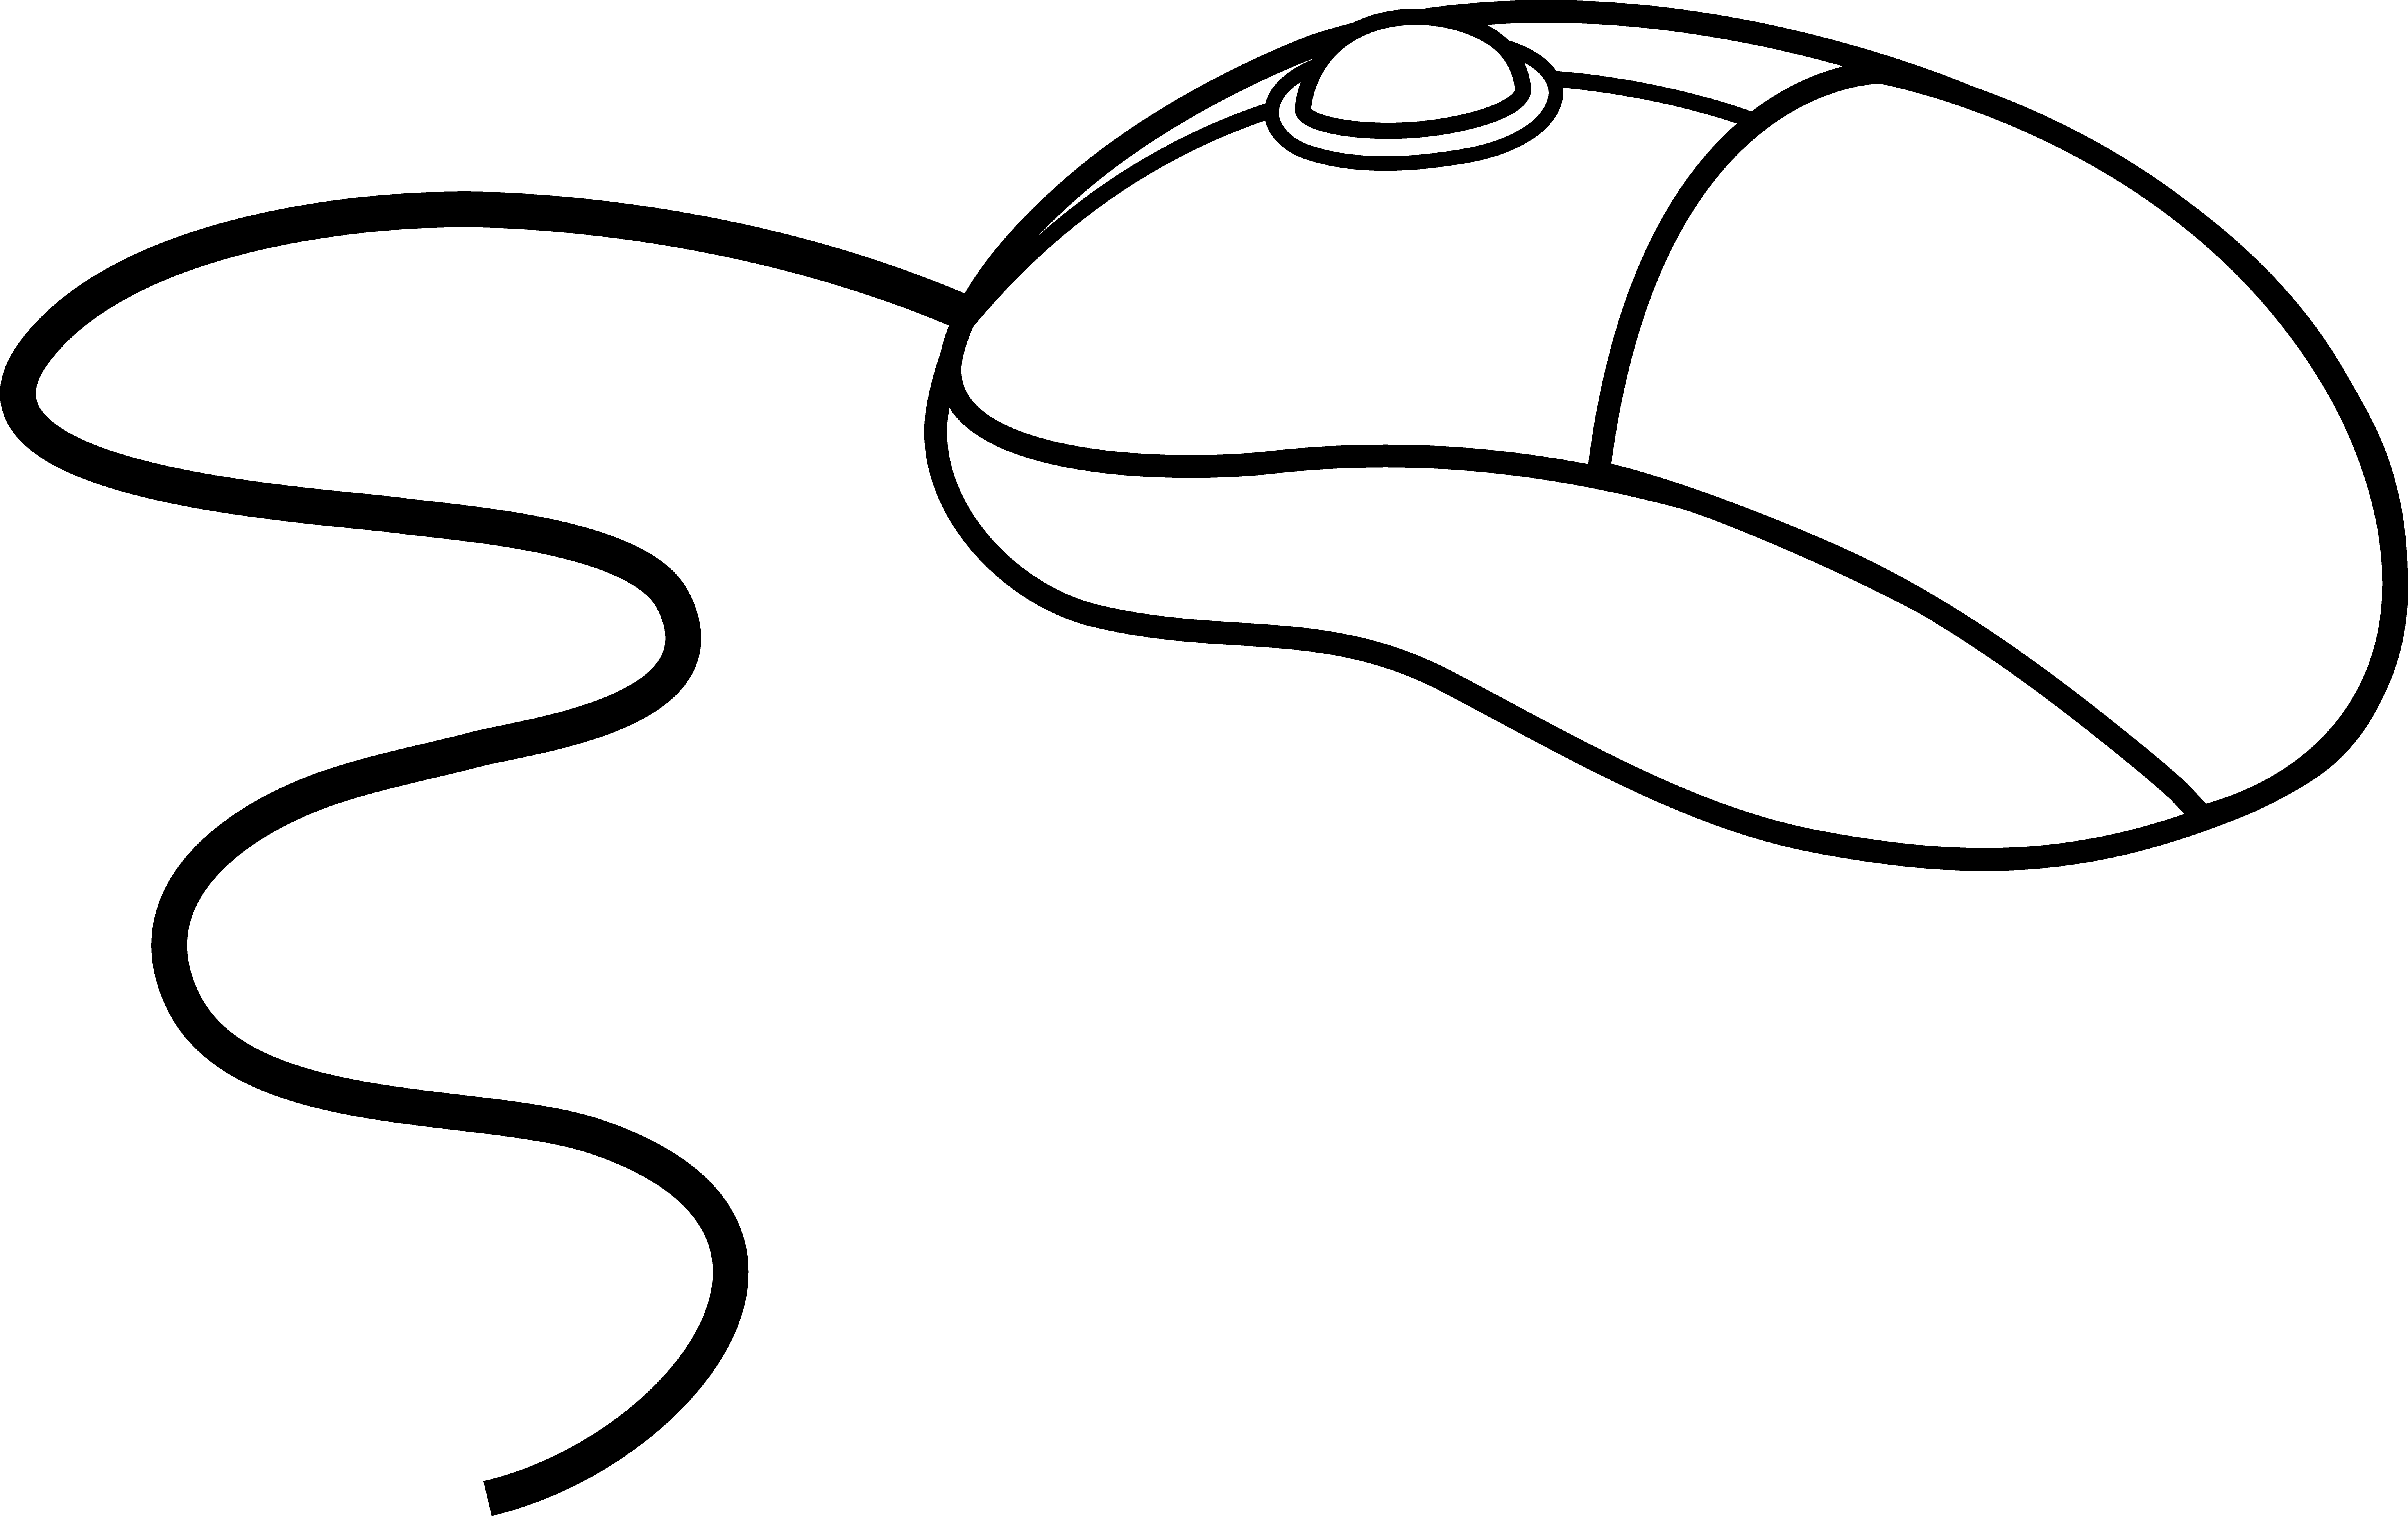 Computer Mouse Clipart Black And White | Clipart Panda - Free ...